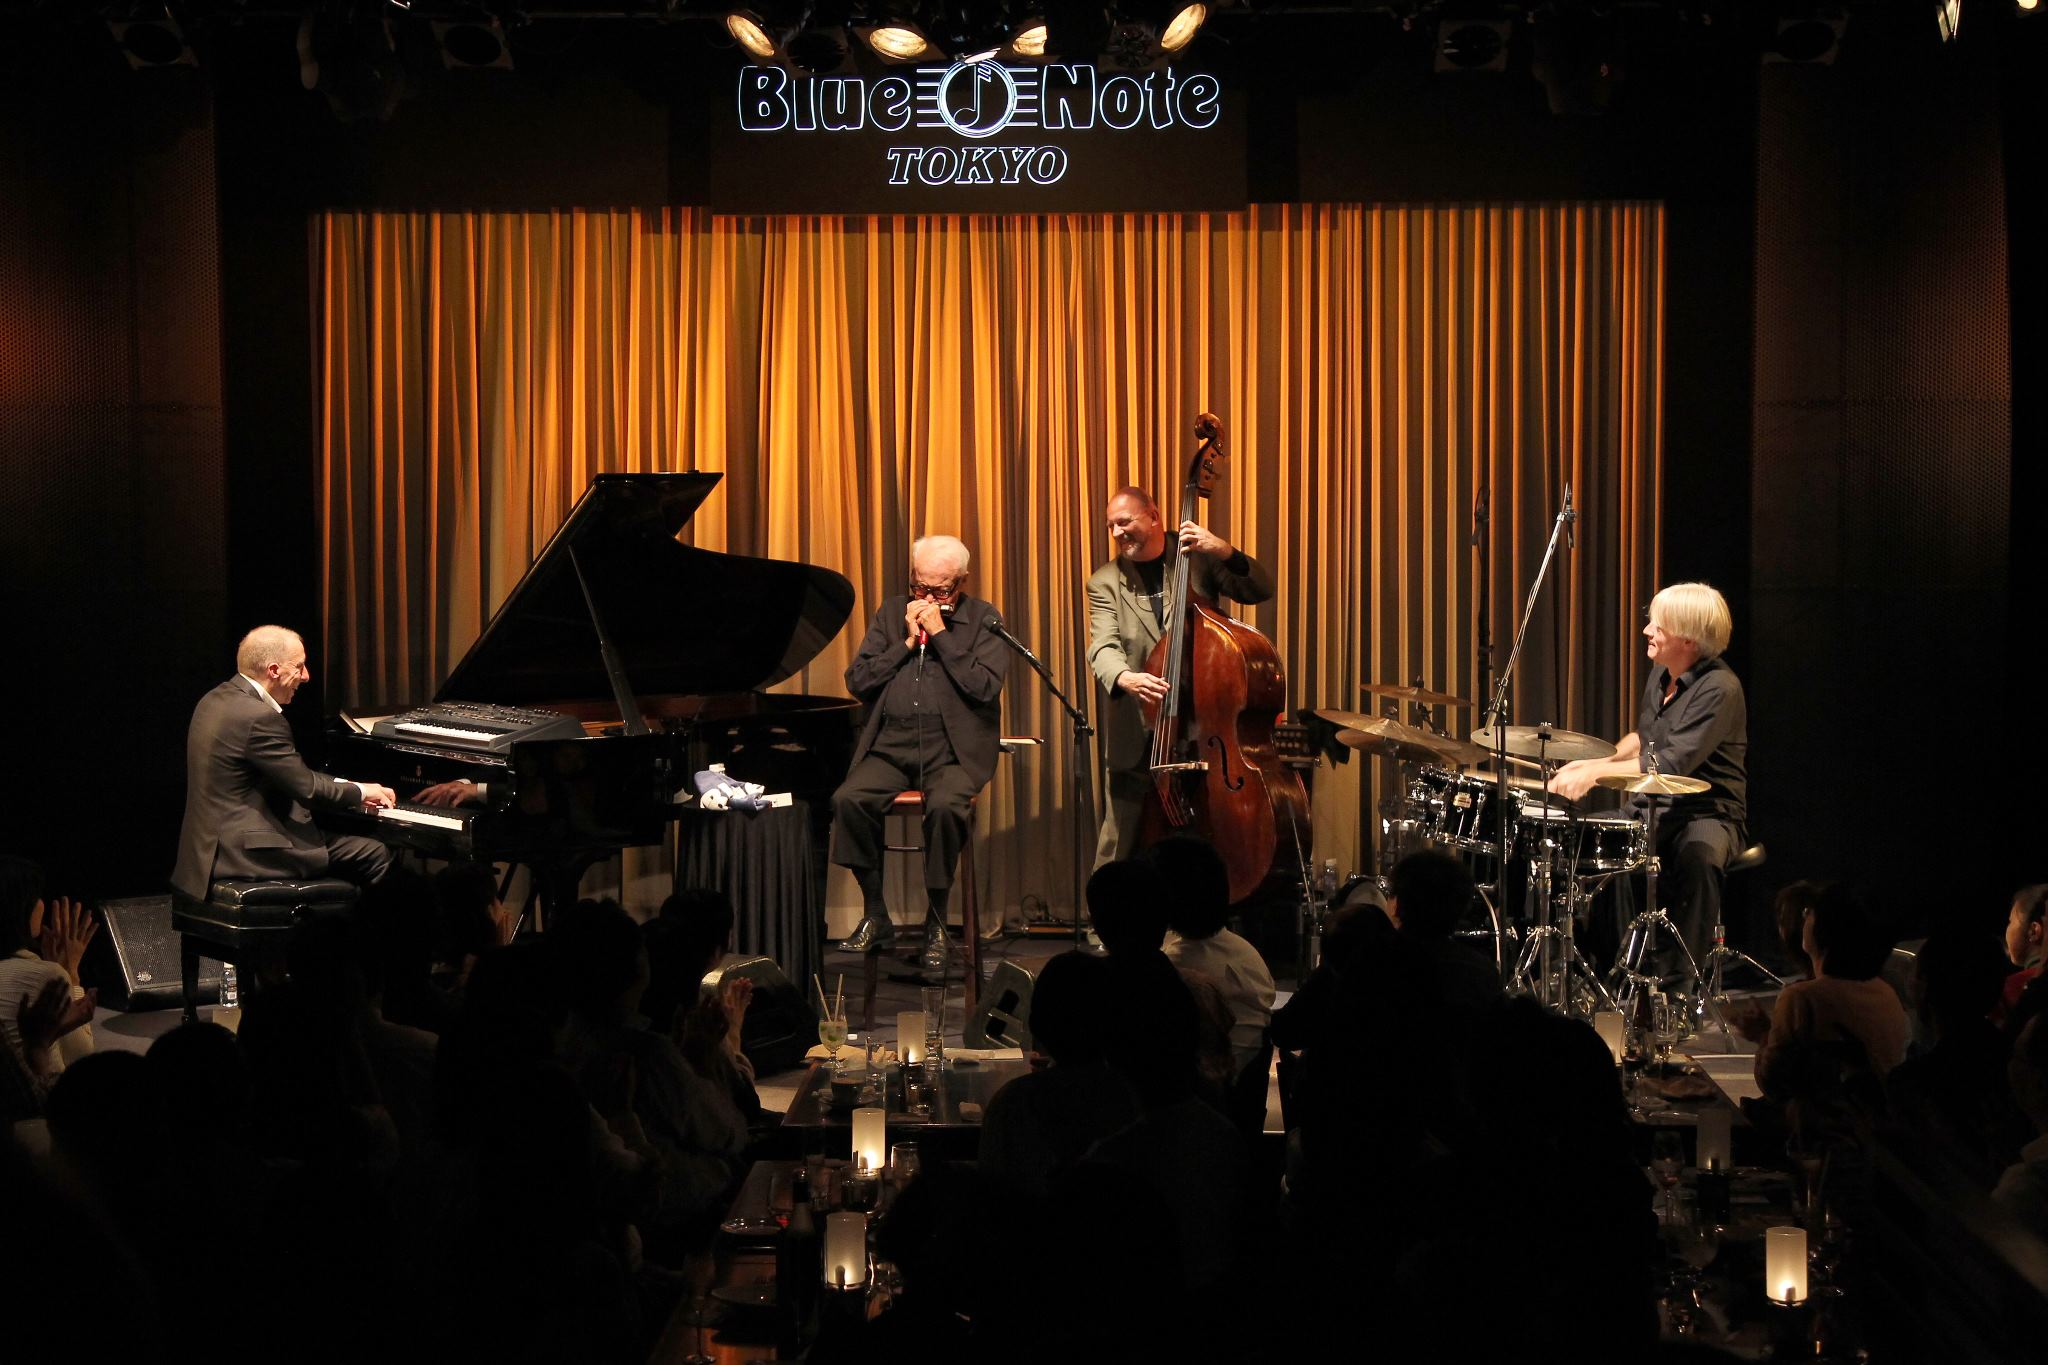 Thielemans performing at the Blue Note in Tokyo in a 2012 photo on his Facebook page